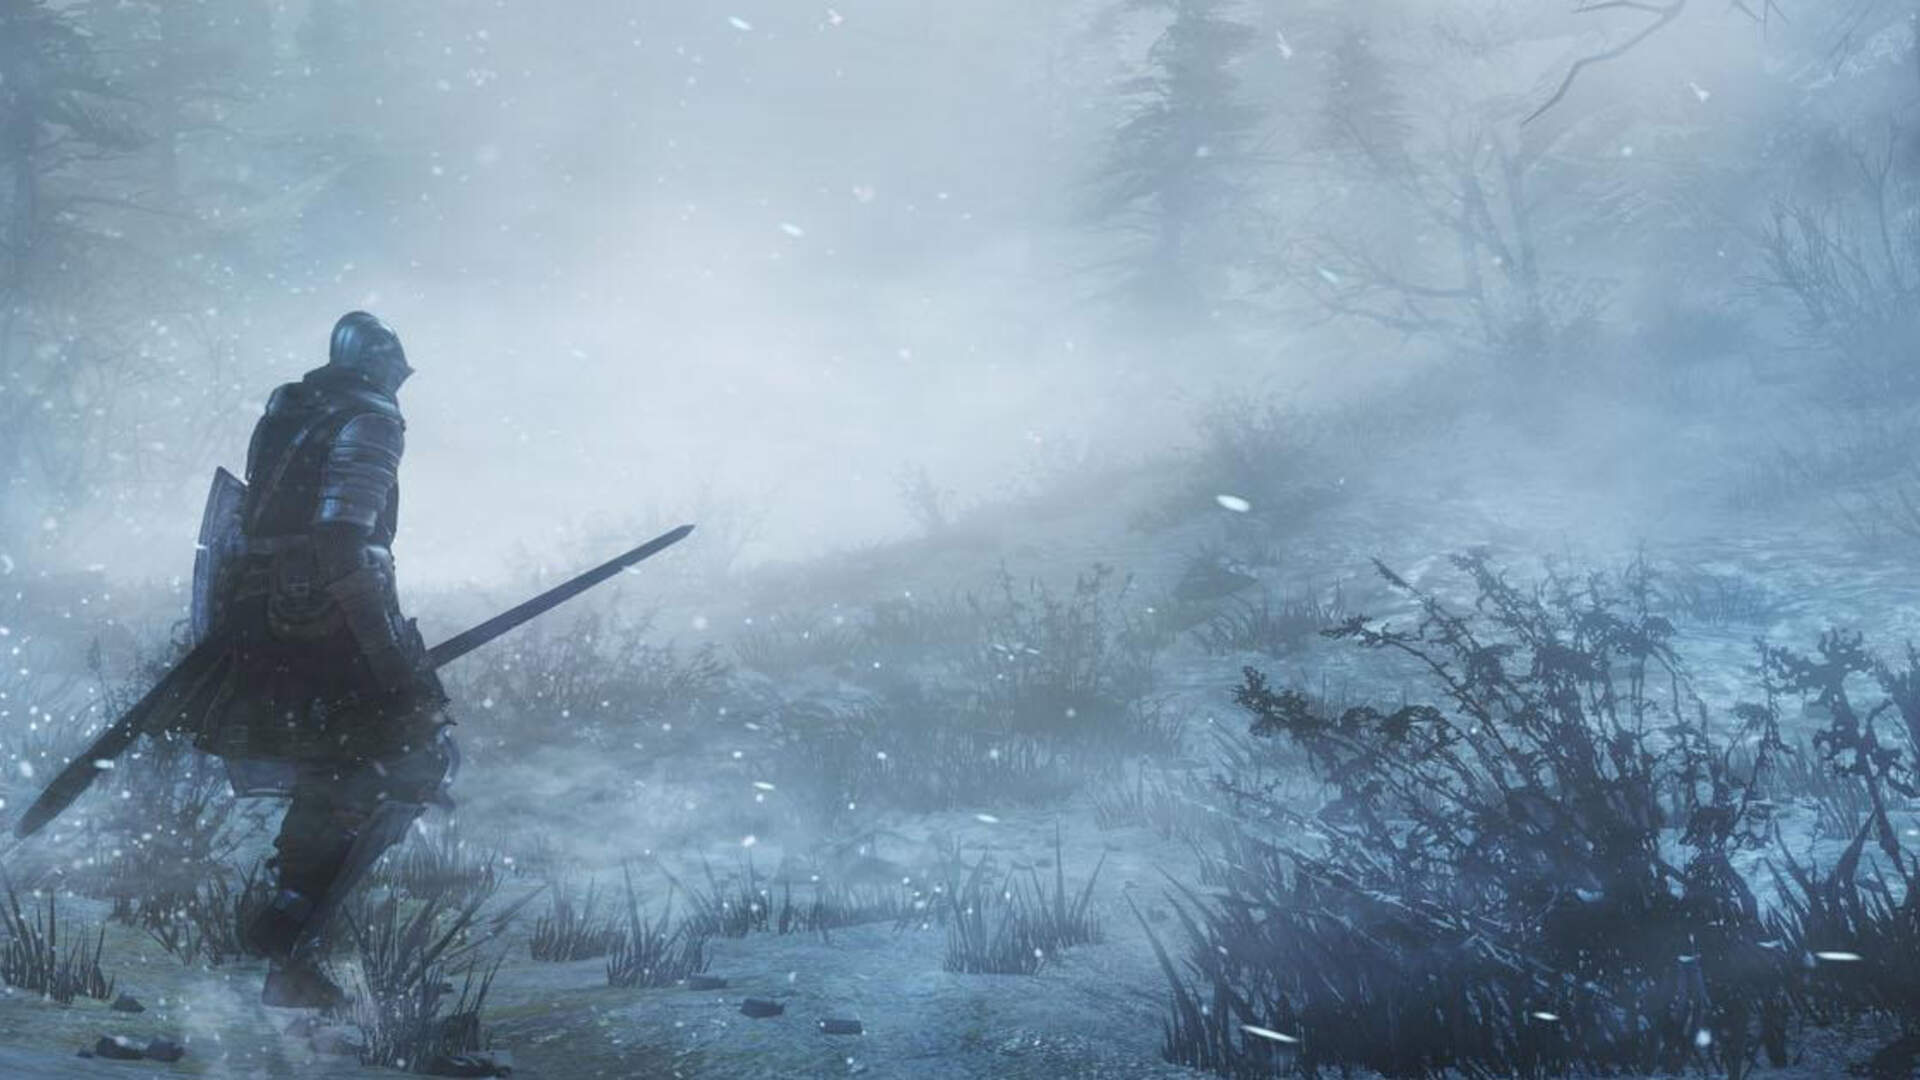 Dark Souls 3: Ashes of Ariandel DLC Review: Frozen Beauty